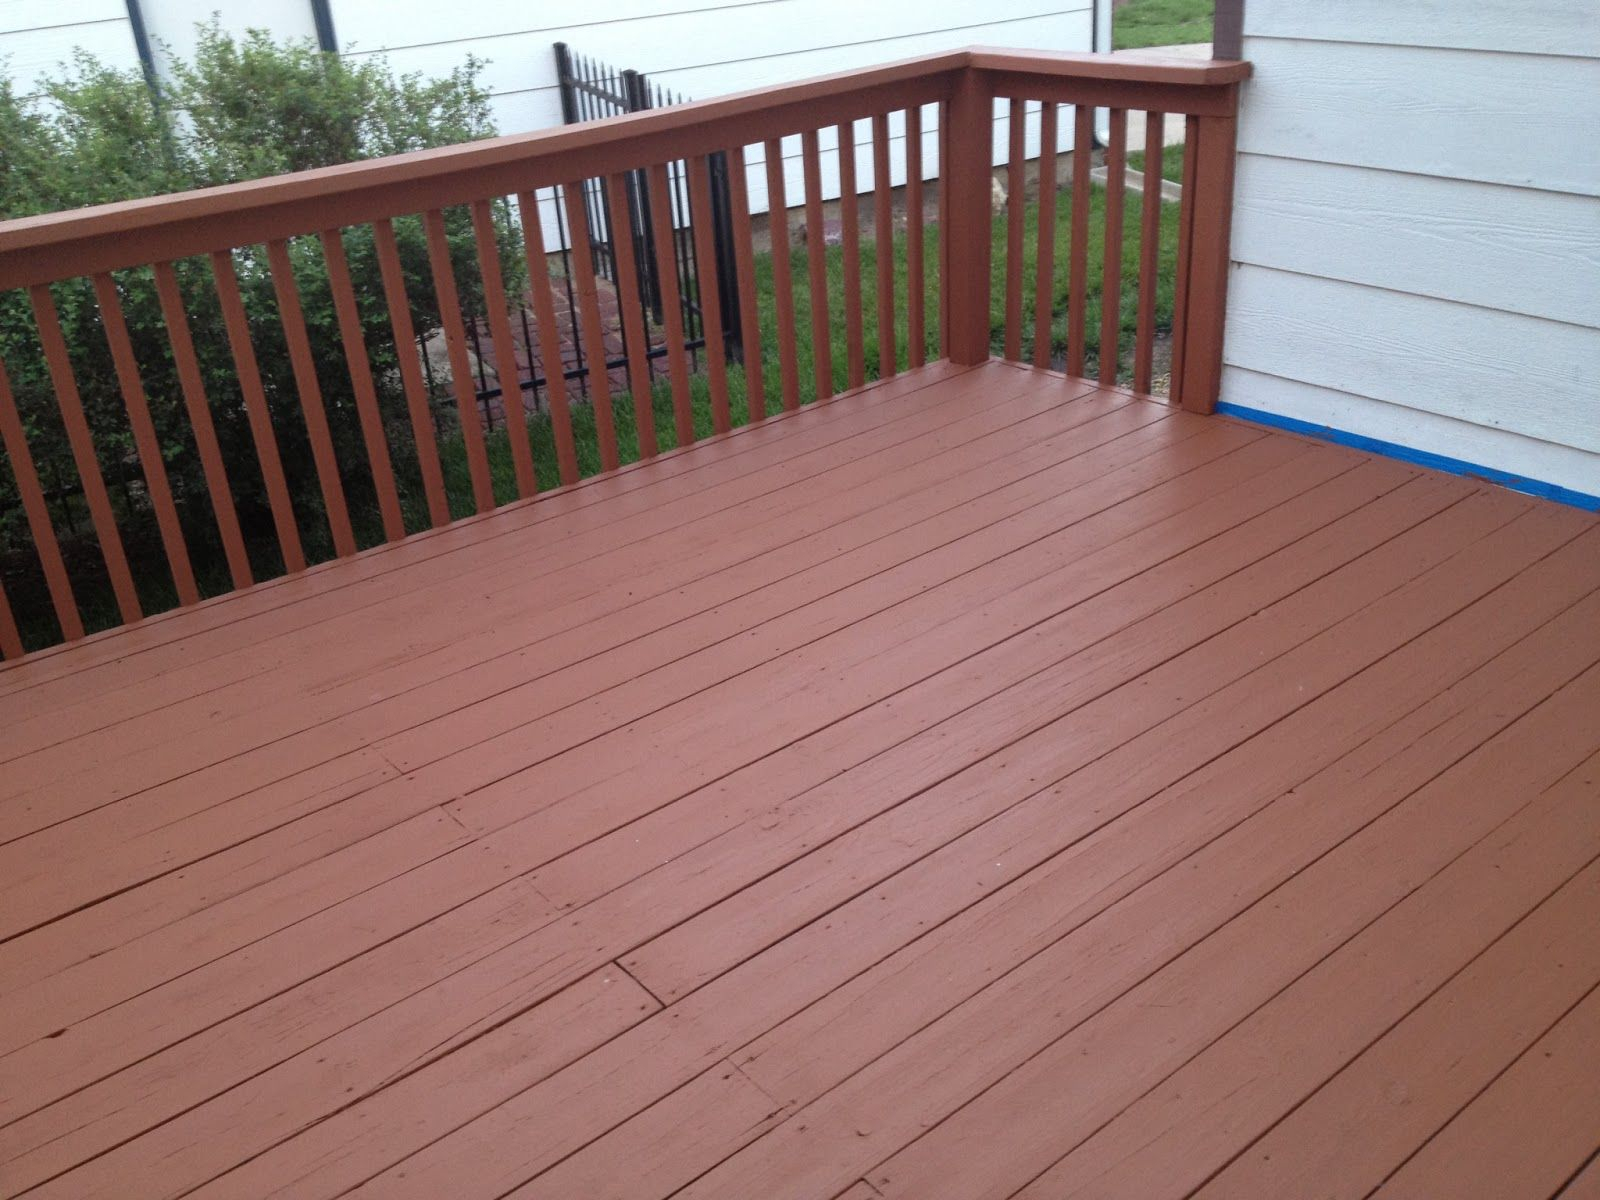 Behr Deckover Cappuccino Solid Color Behr Weatherproof Wood Stain with regard to size 1600 X 1200